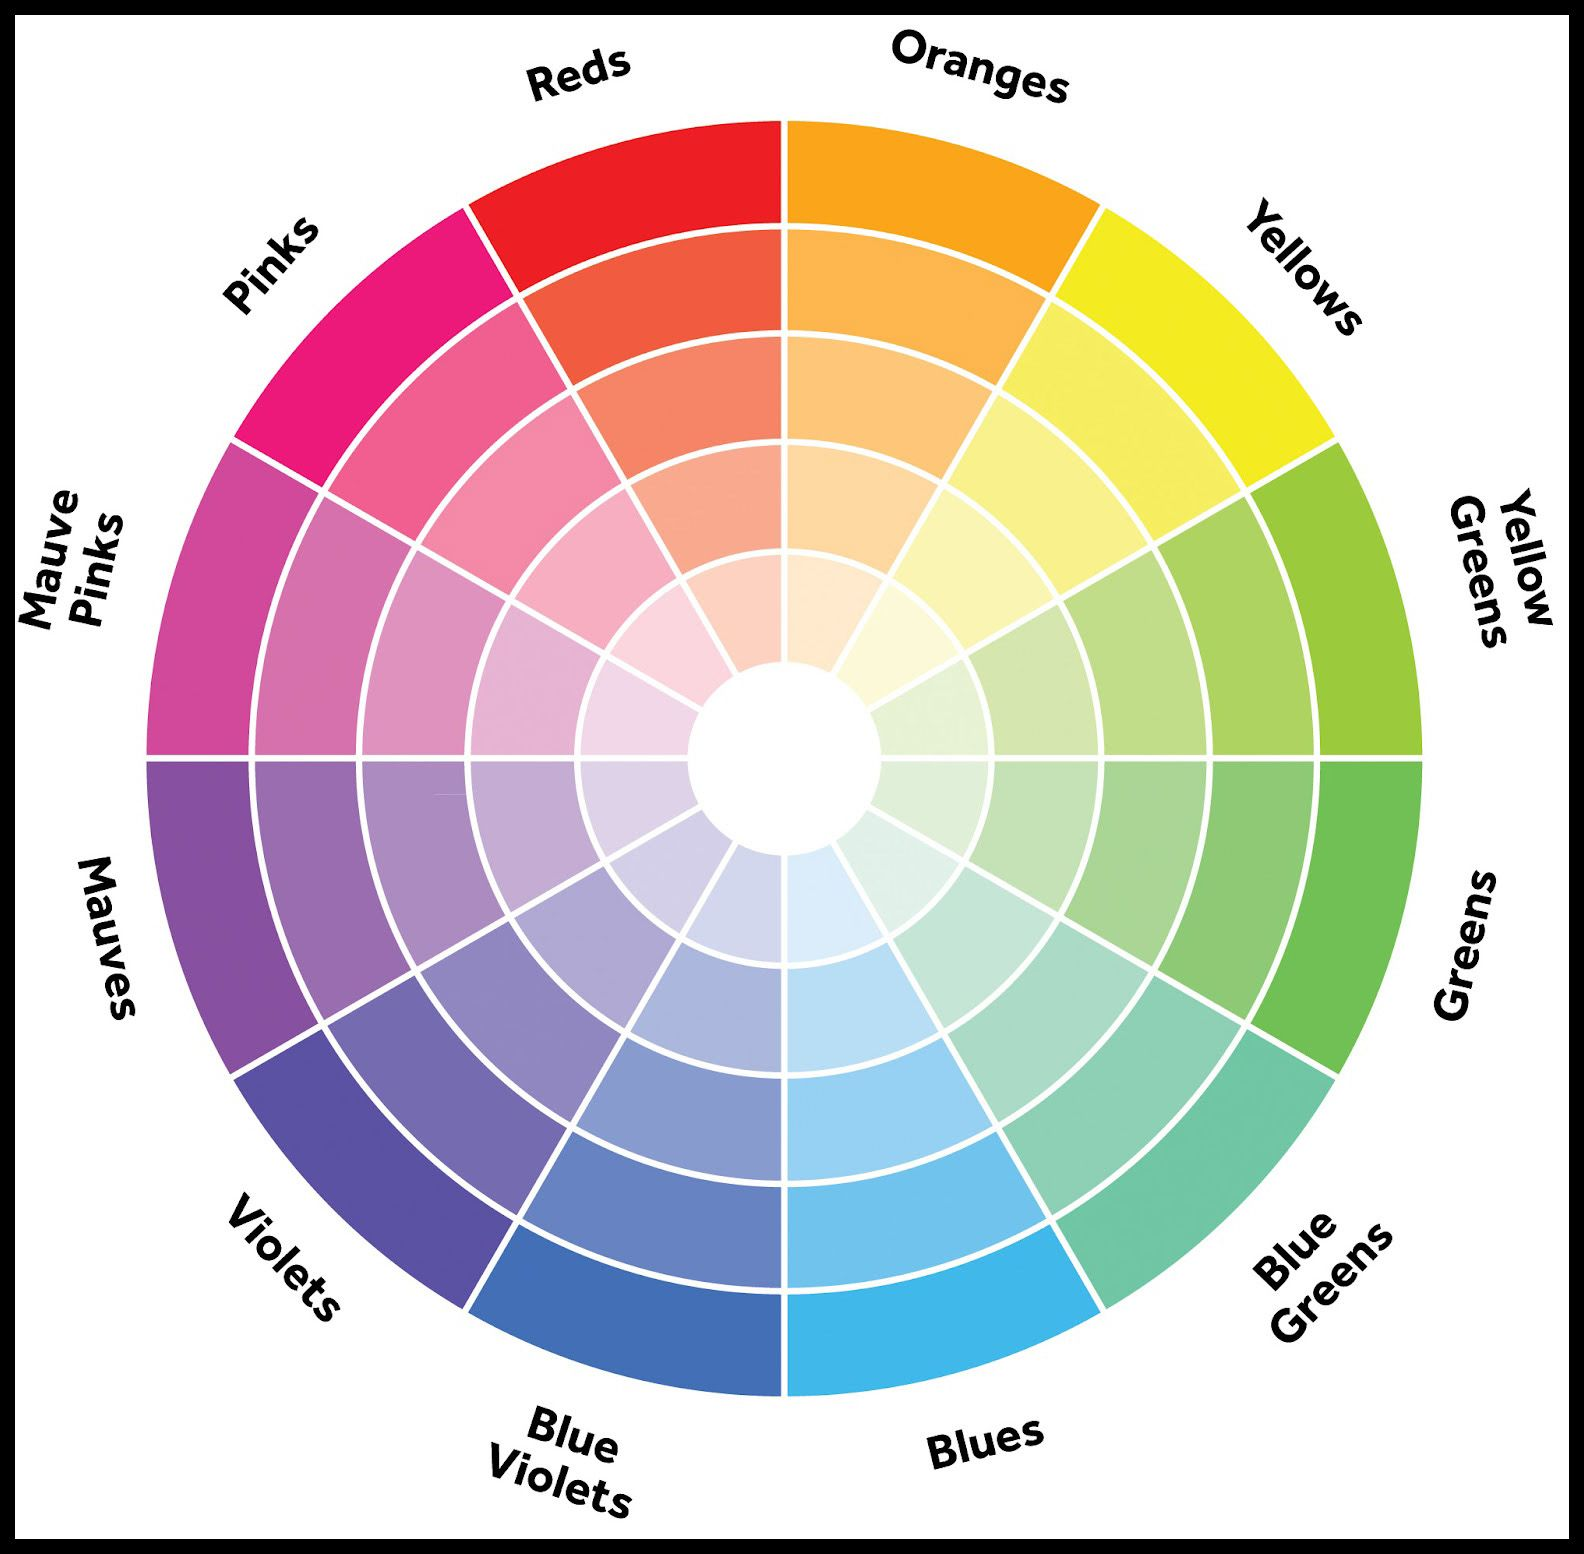 Color theory online games - Interior Decorating With Color Cool Hues Tones